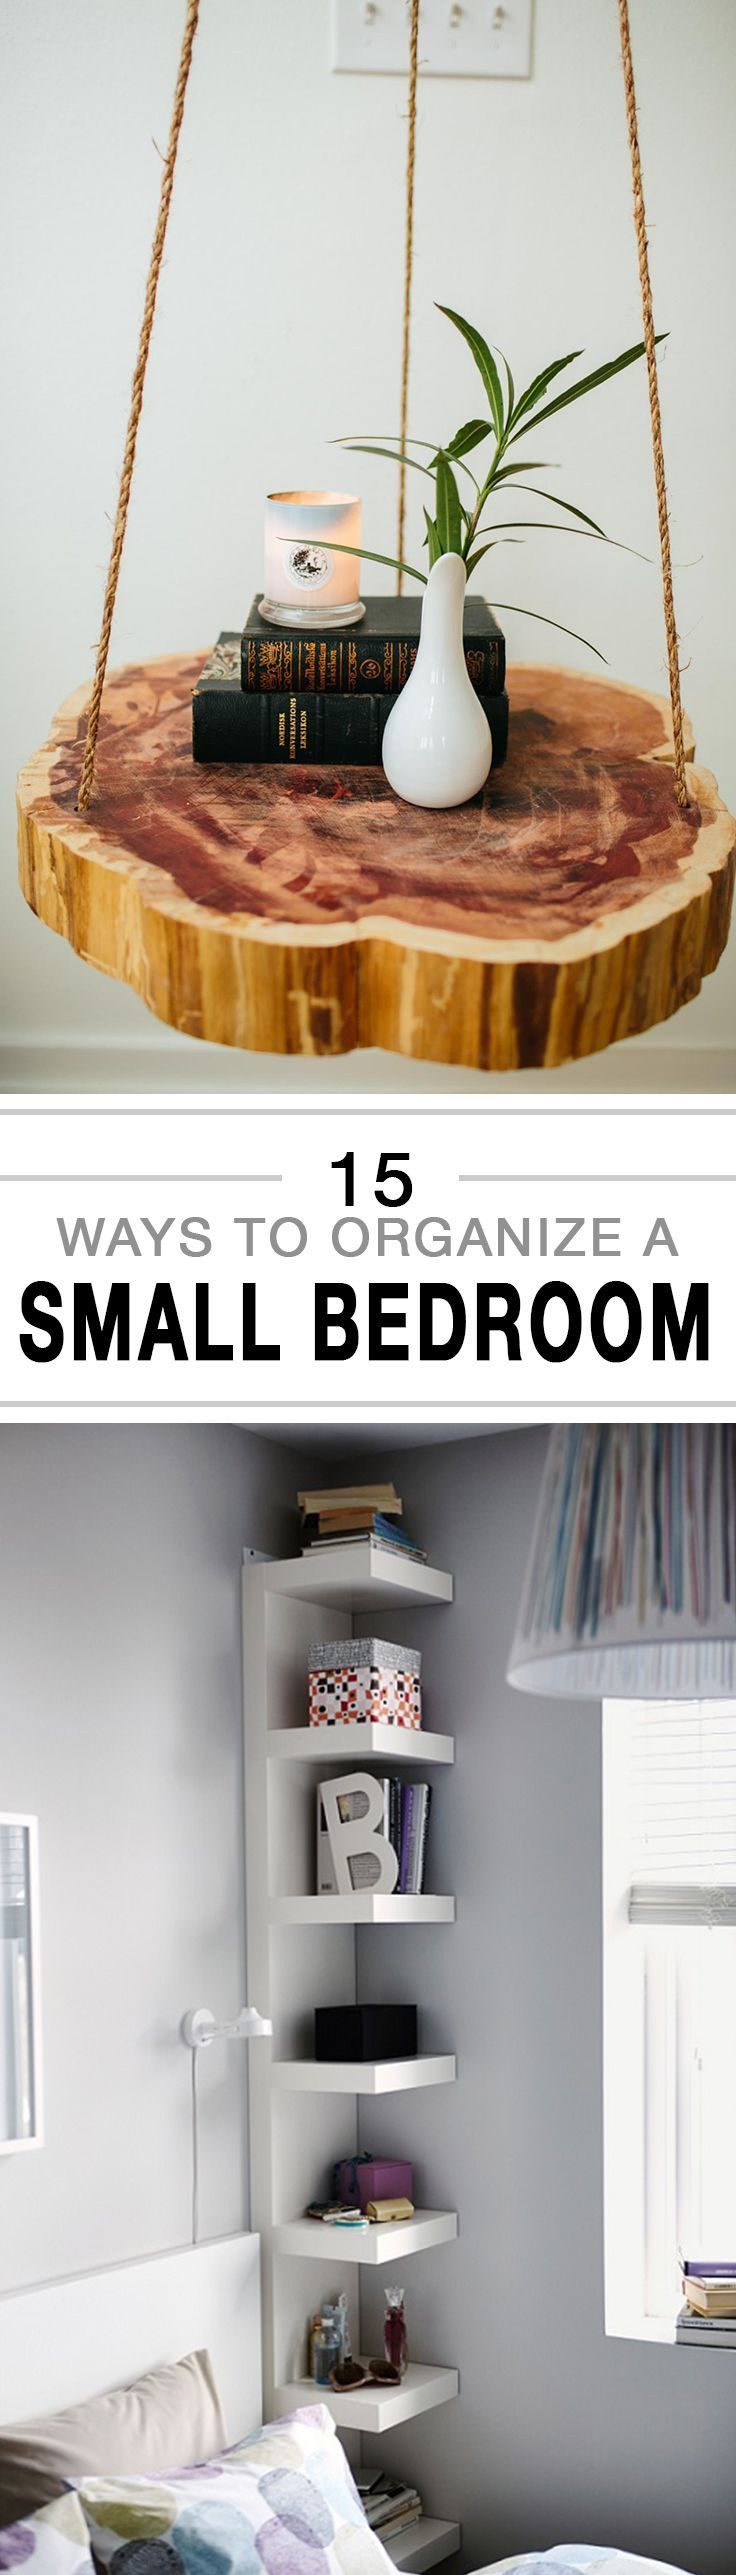 15 Ways to Organize a Small Bedroom -                                                                                                                                                                                 More